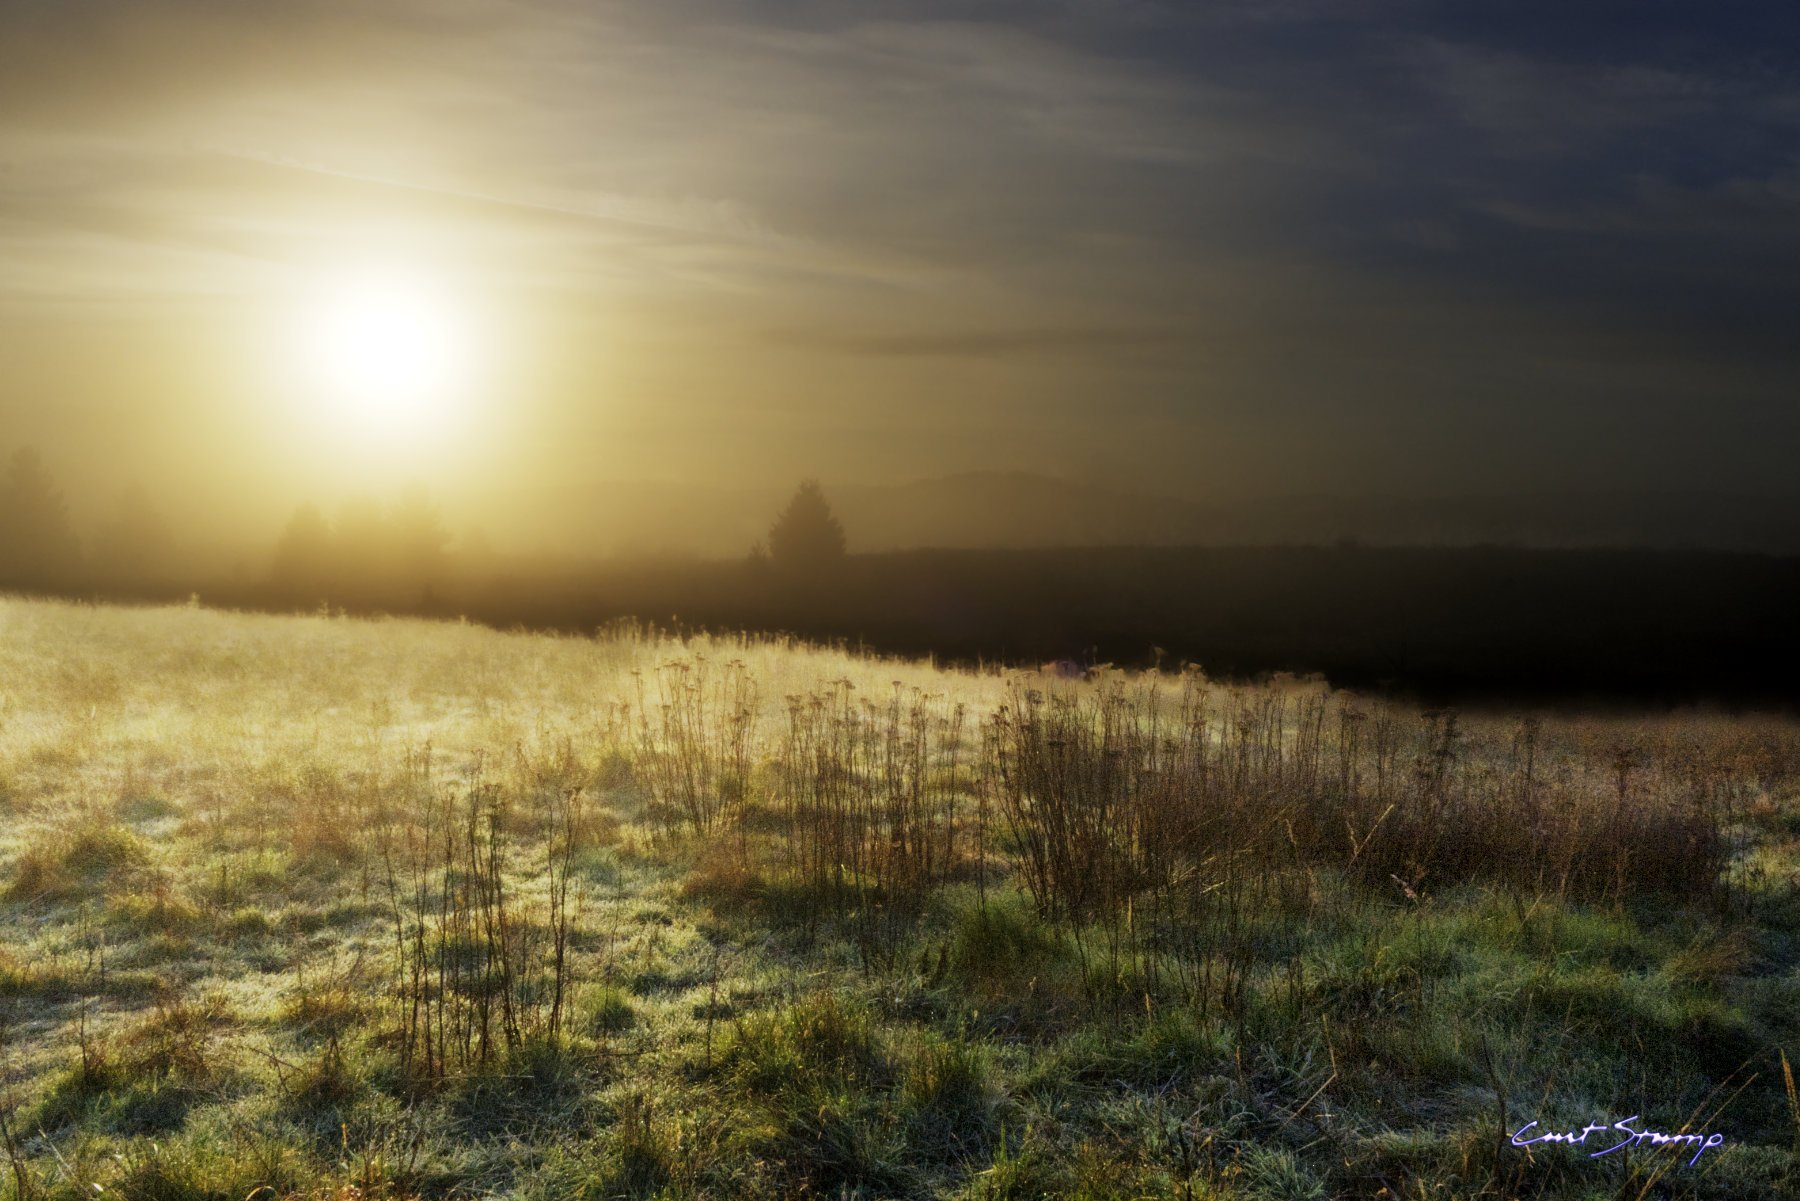 A mystical morning with the sun and a frosty field. Sunrise from Powell Butte, Portland, Oregon.